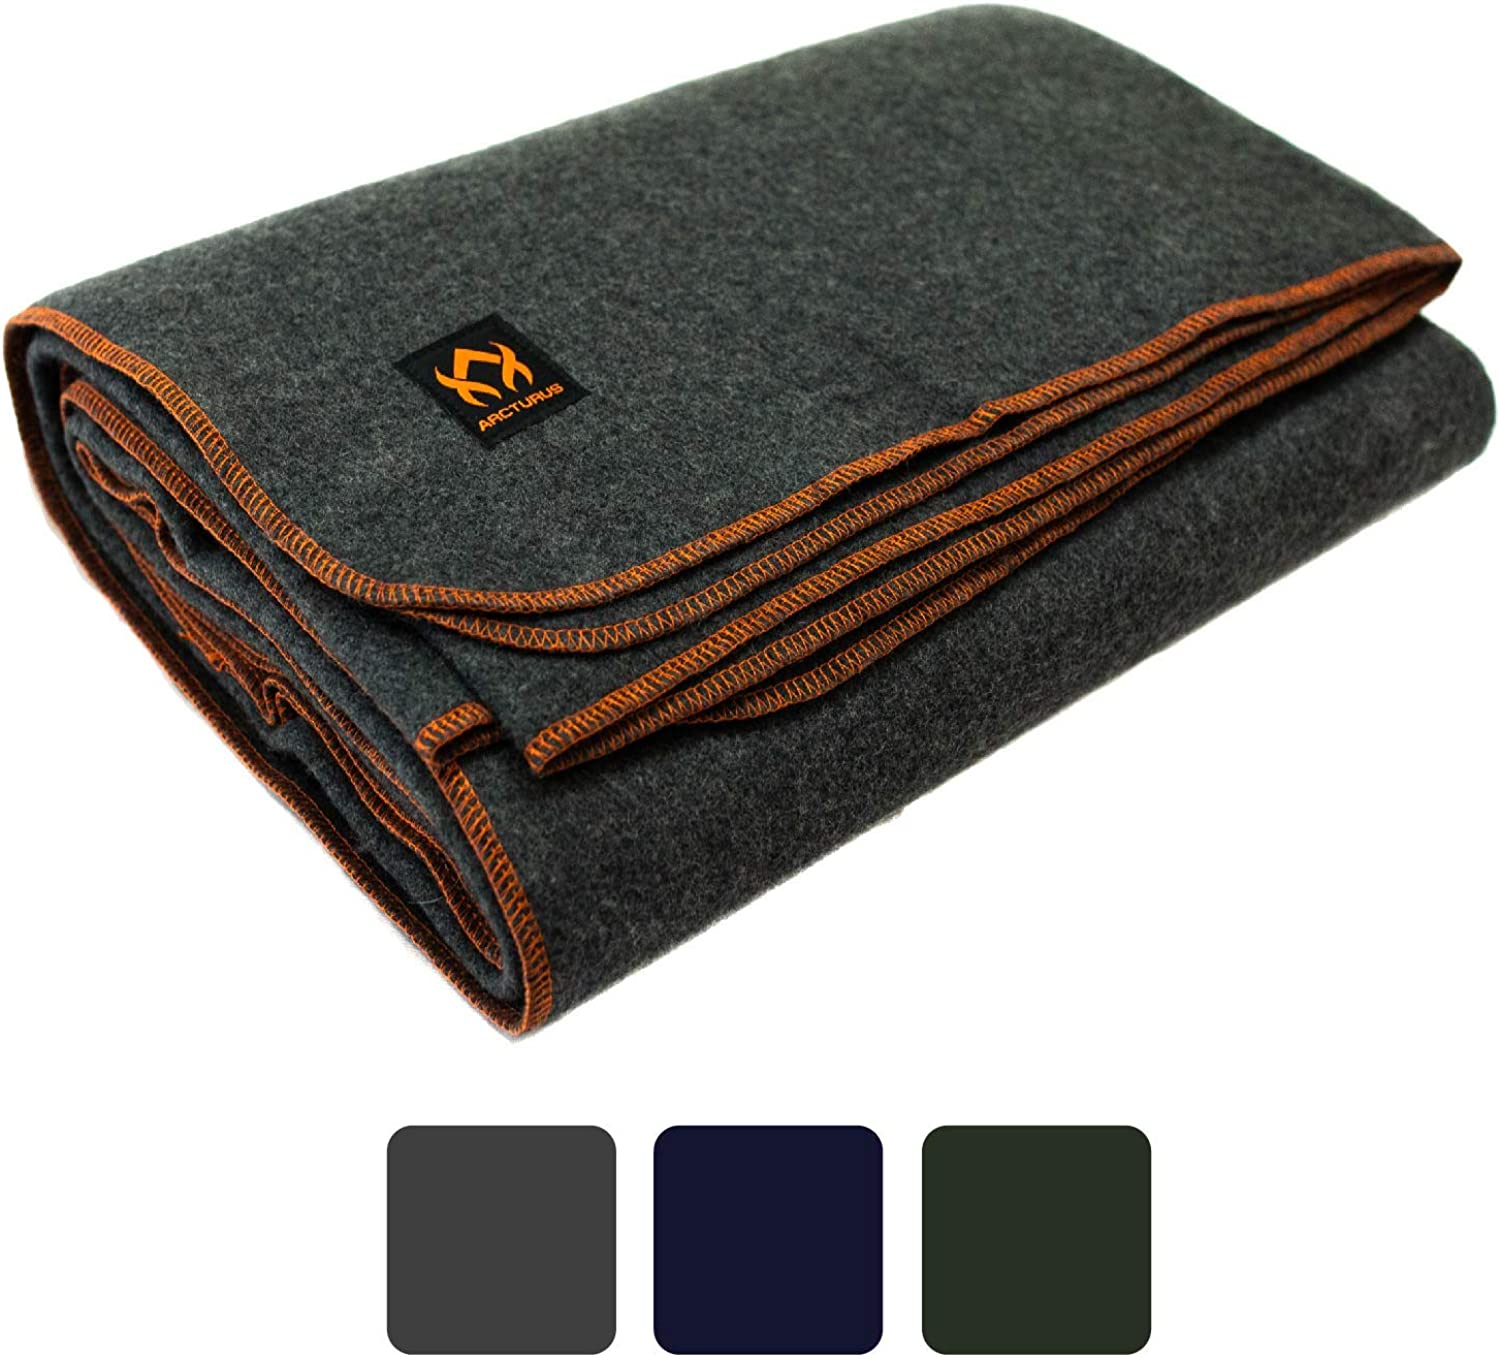 """Arcturus Military Wool Blanket - 4.5 lbs, Warm, Thick, Washable, Large 64"""" x 88"""" - Great for Camping, Outdoors, Survival & Emergency Kits (Military Gray) : Clothing"""